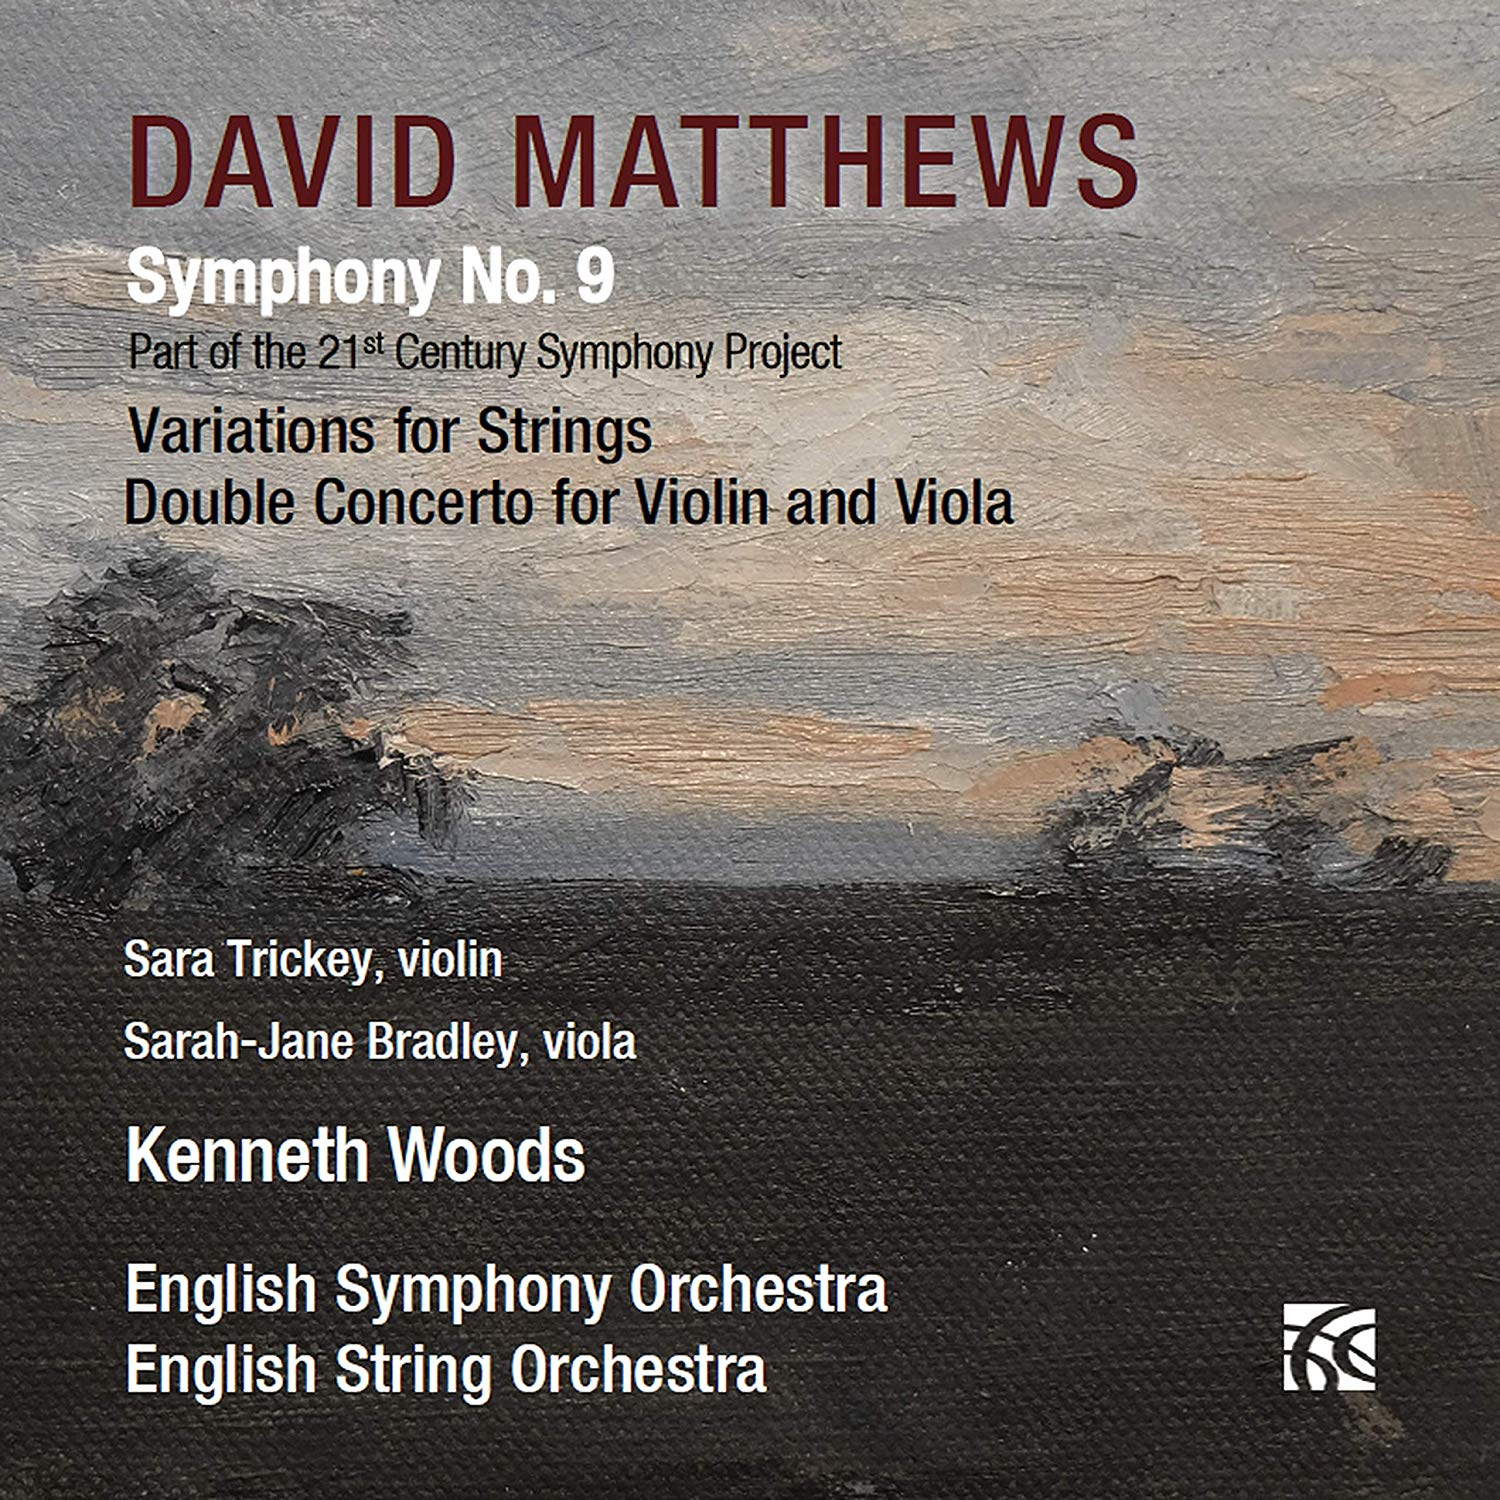 Fanfare Magazine on Matthews Symphony No. 9